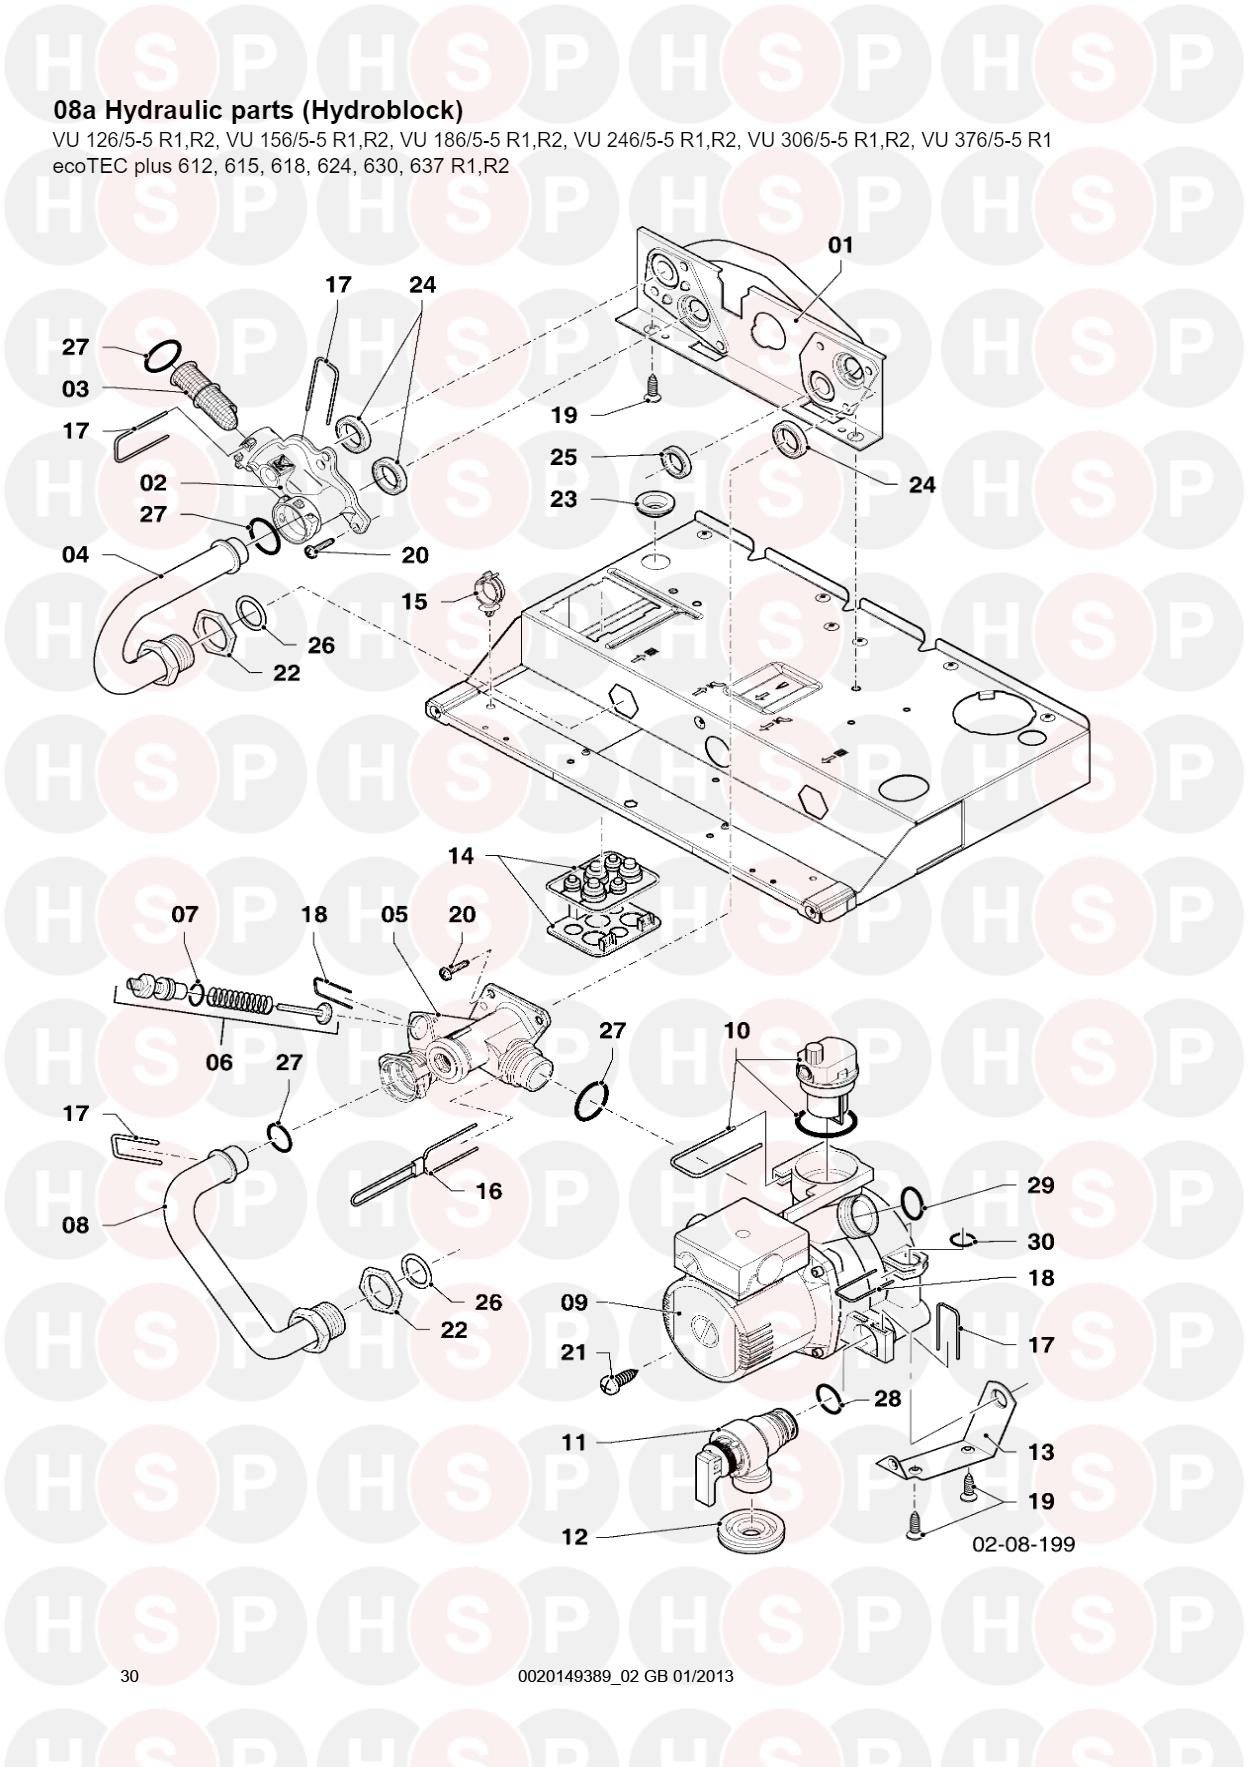 Vaillant ecotec plus 612 615 618 624 630 637 08a hydraulic 08a hydraulic parts hydroblock sheet 2 diagram for vaillant ecotec plus 612 615 asfbconference2016 Images